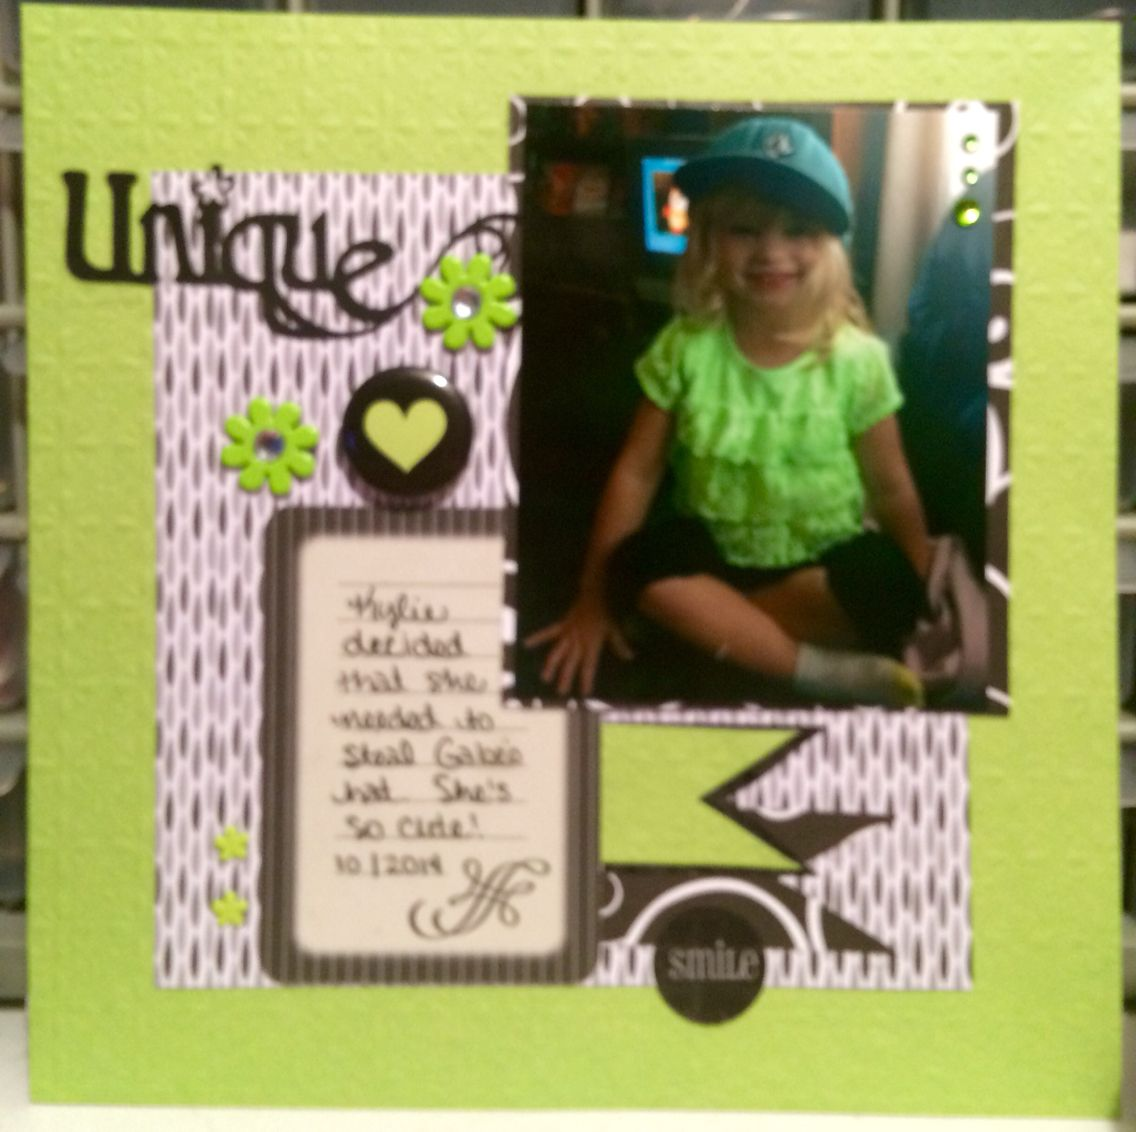 How to scrapbook 8x8 layouts - 8x8 Scrapbooking Layout Green Black Gray